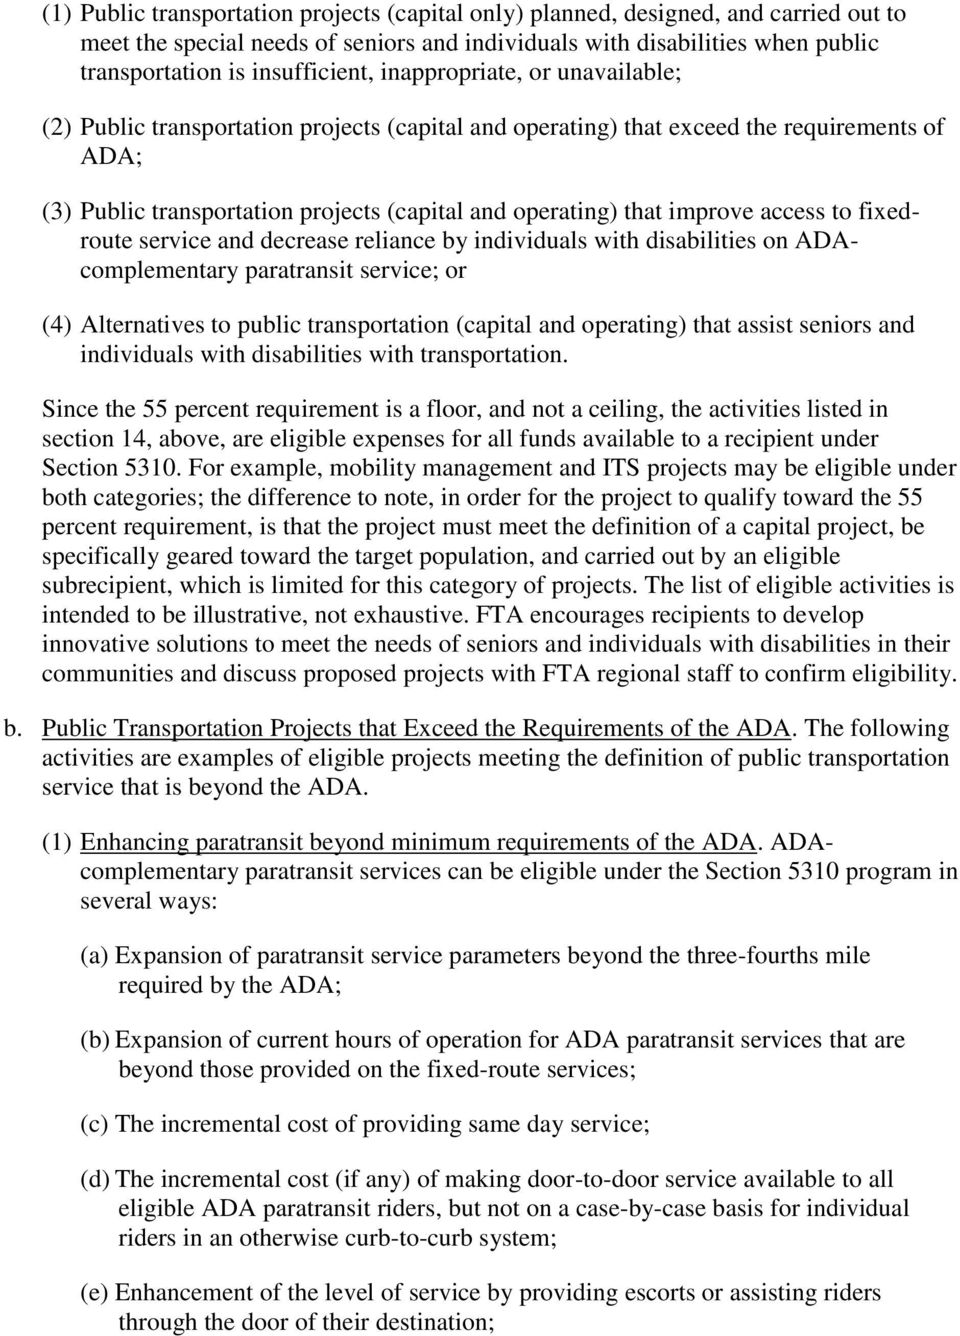 access to fixedroute service and decrease reliance by individuals with disabilities on ADAcomplementary paratransit service; or (4) Alternatives to public transportation (capital and operating) that